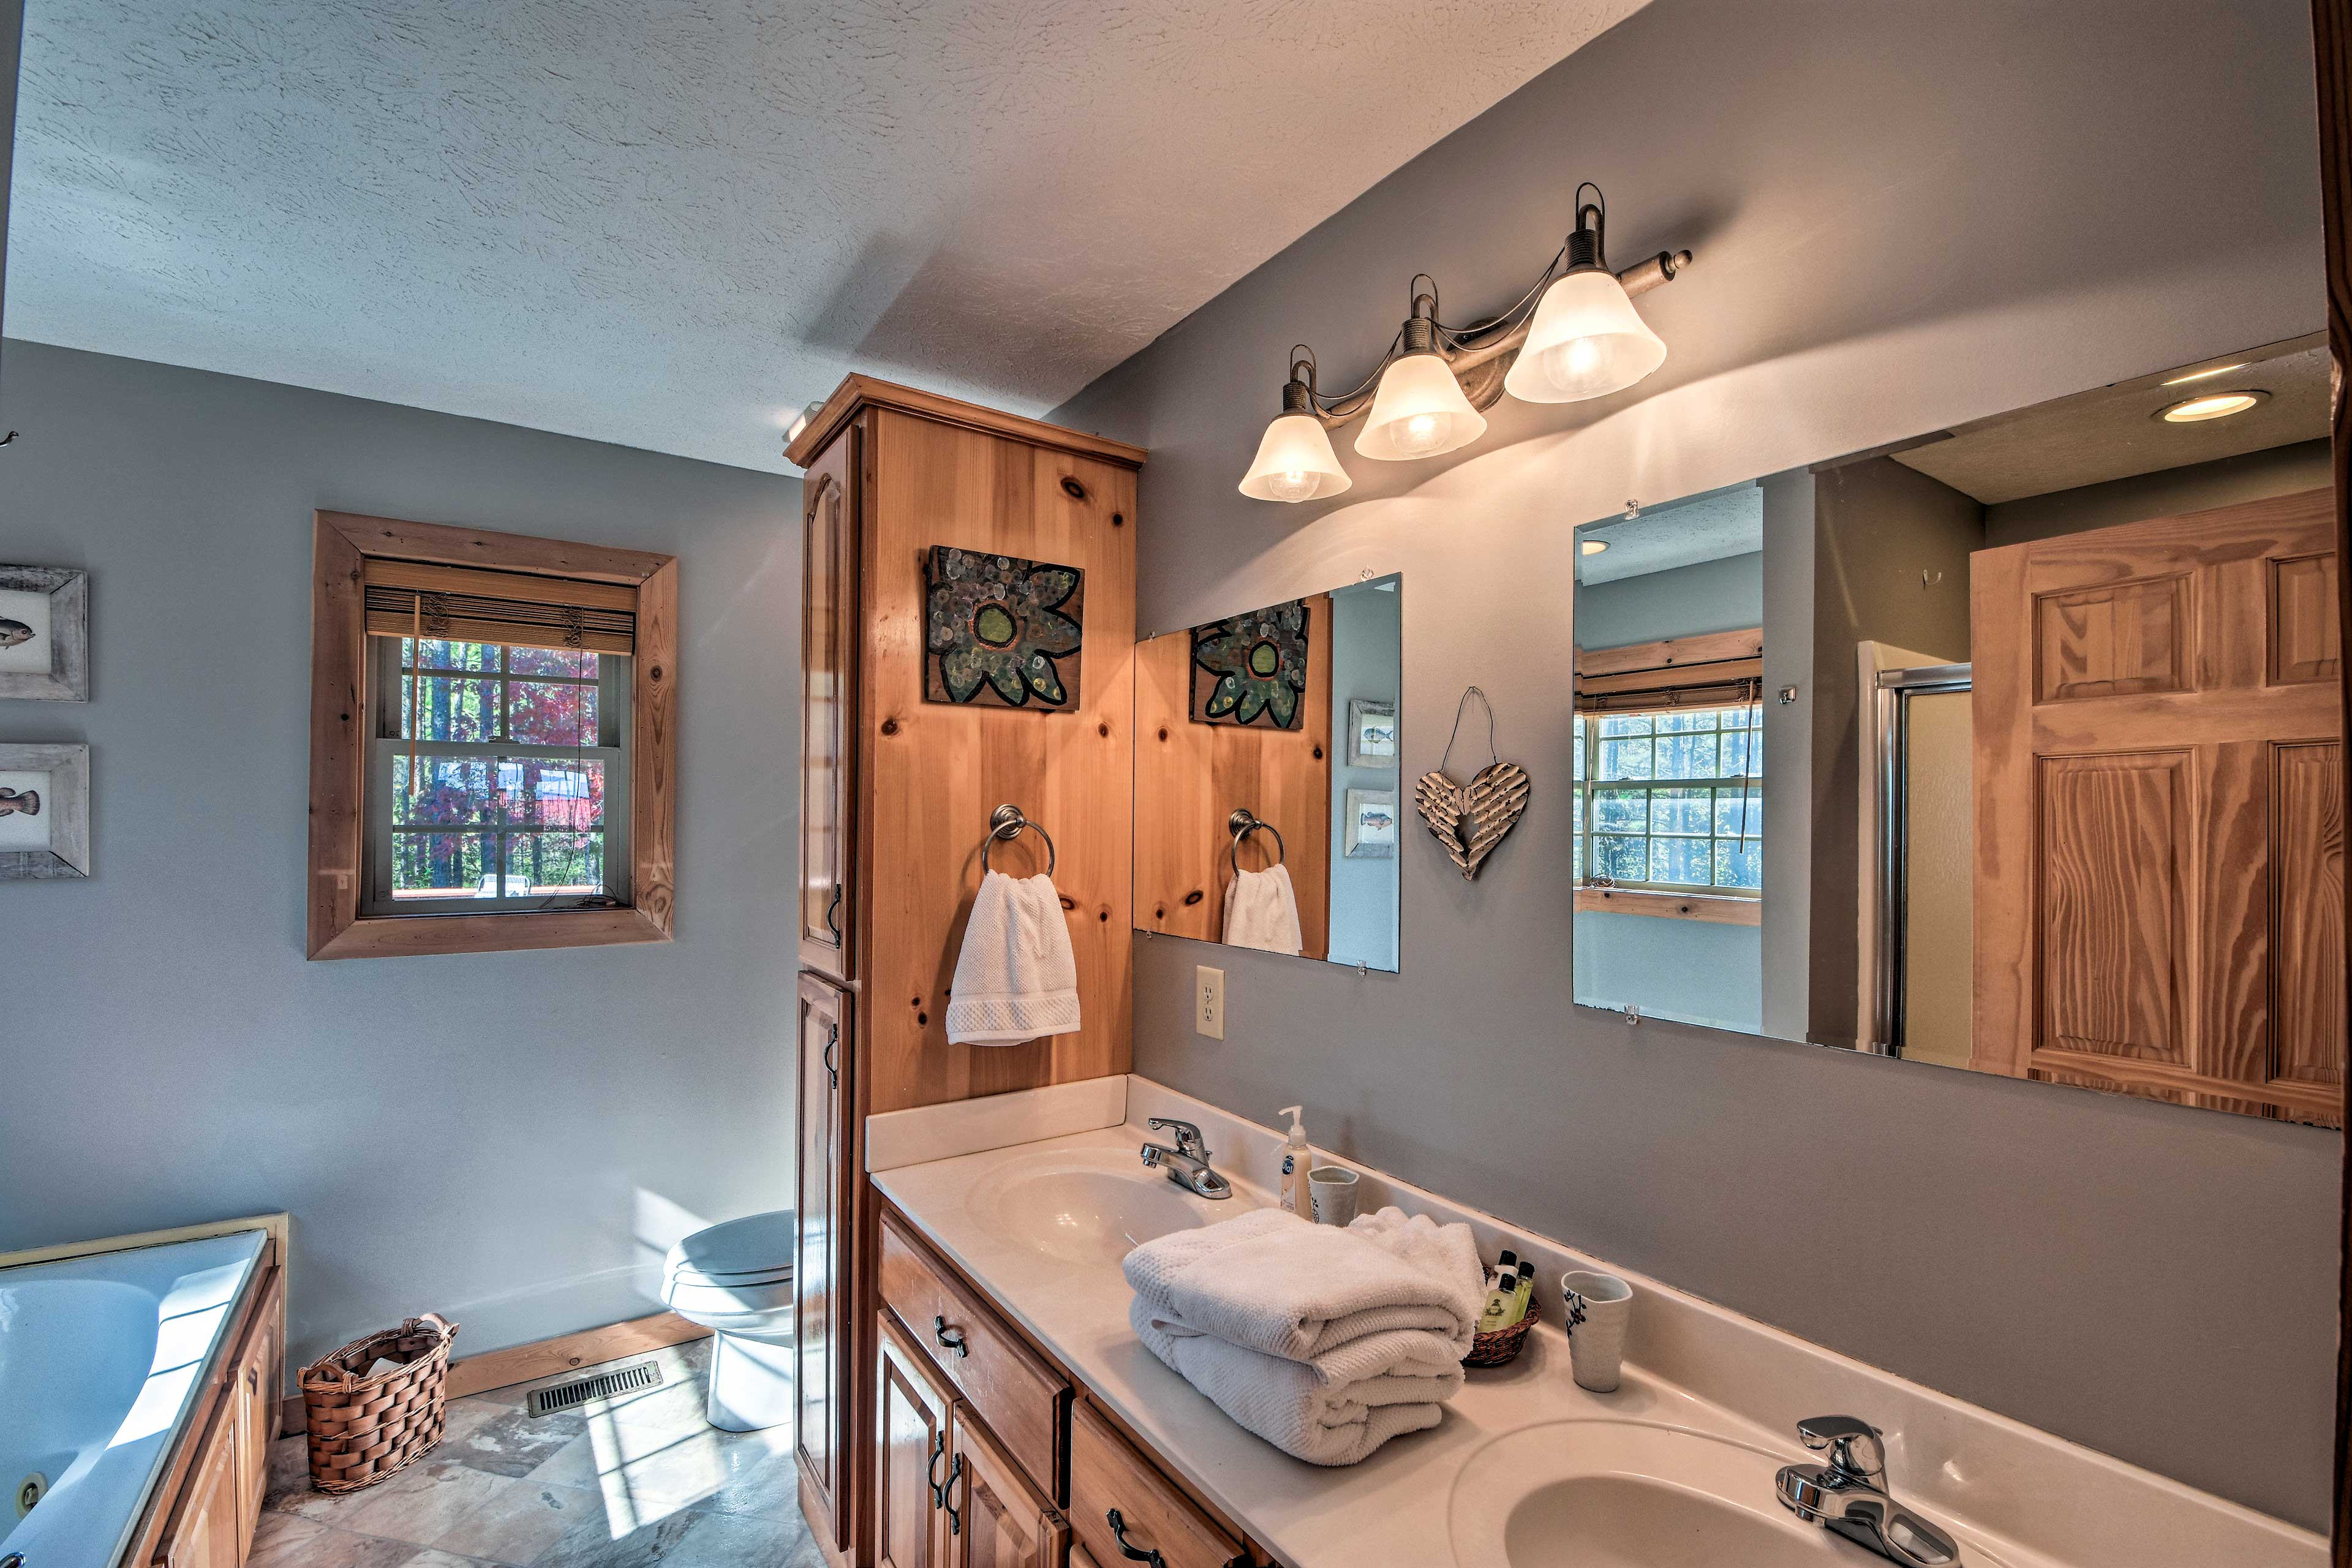 The master bathroom features a double vanity, a bathtub and walk-in shower.